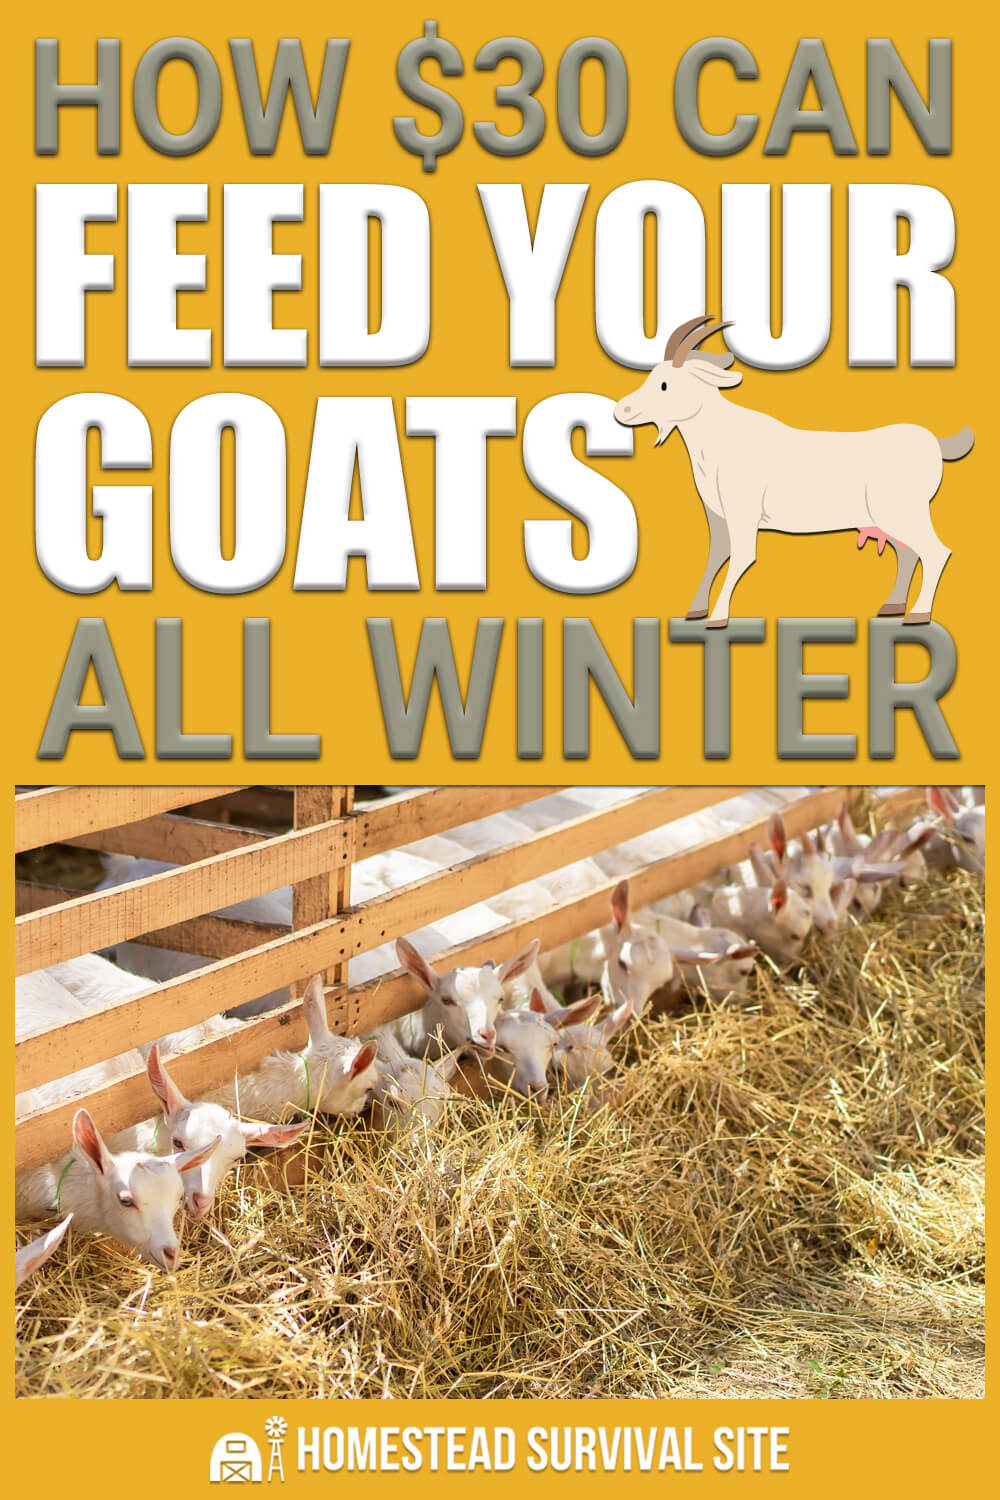 How $30 Can Feed Your Goats All Winter